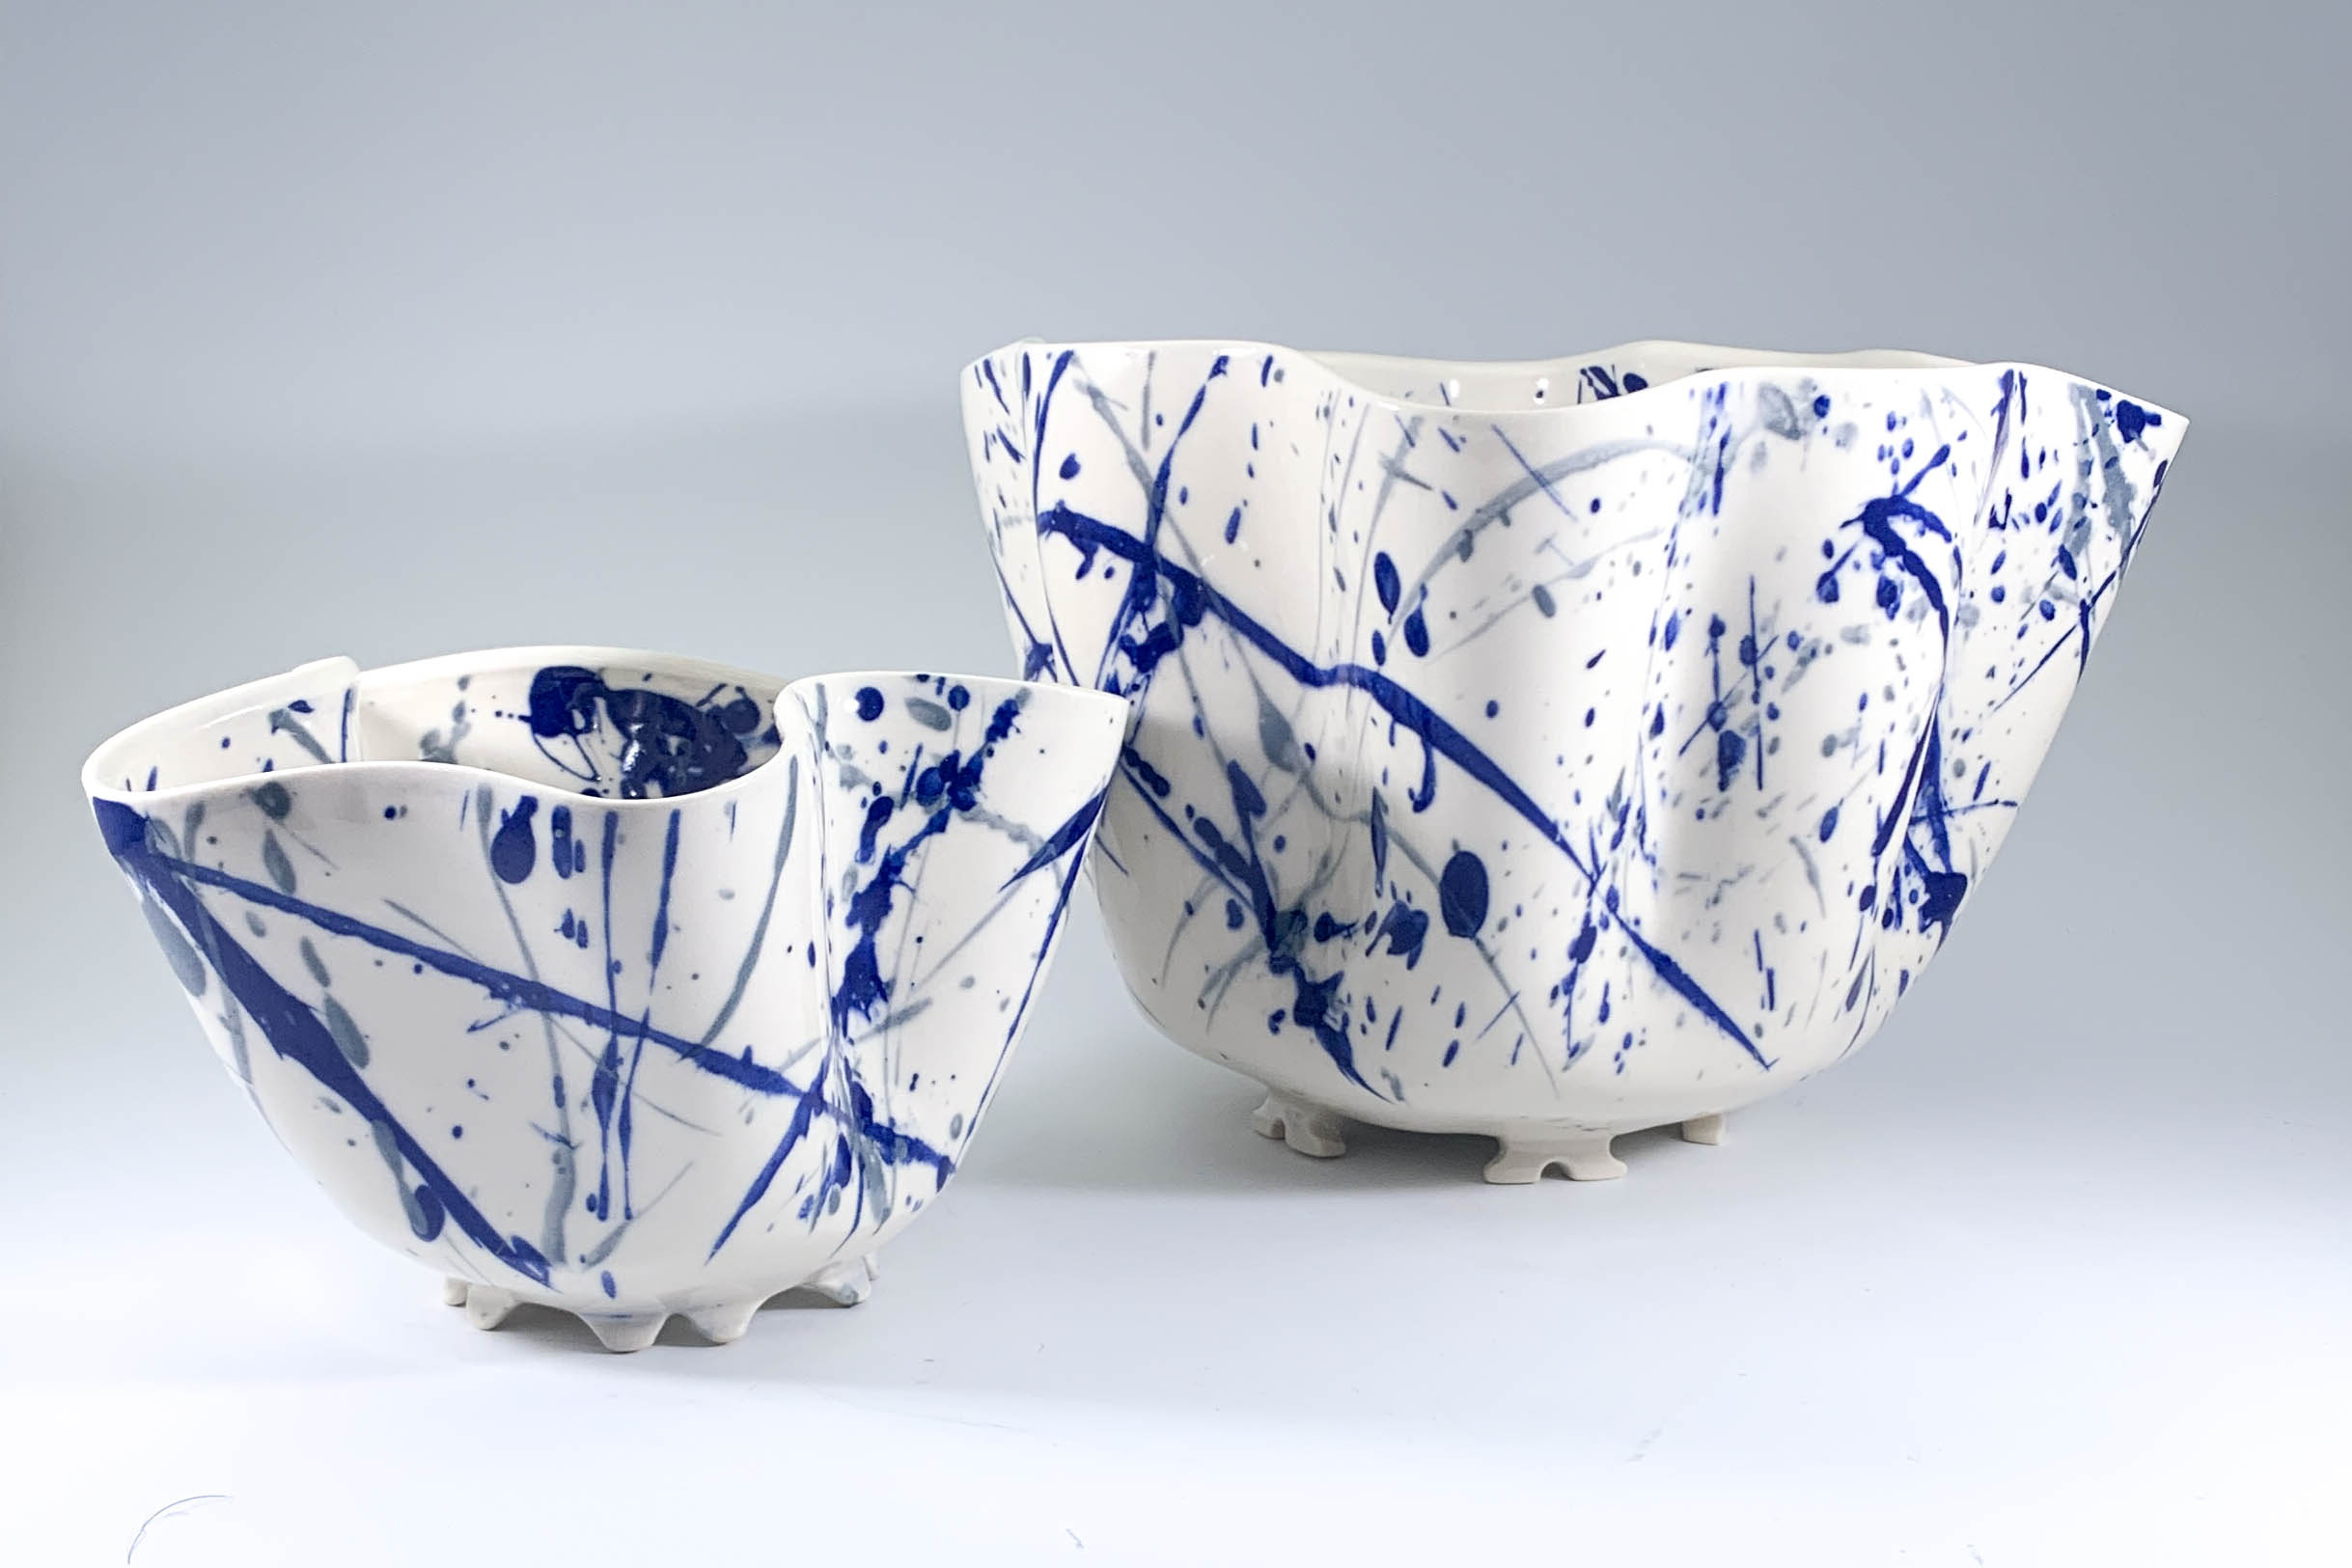 Frenzied Wave Tall Bowls